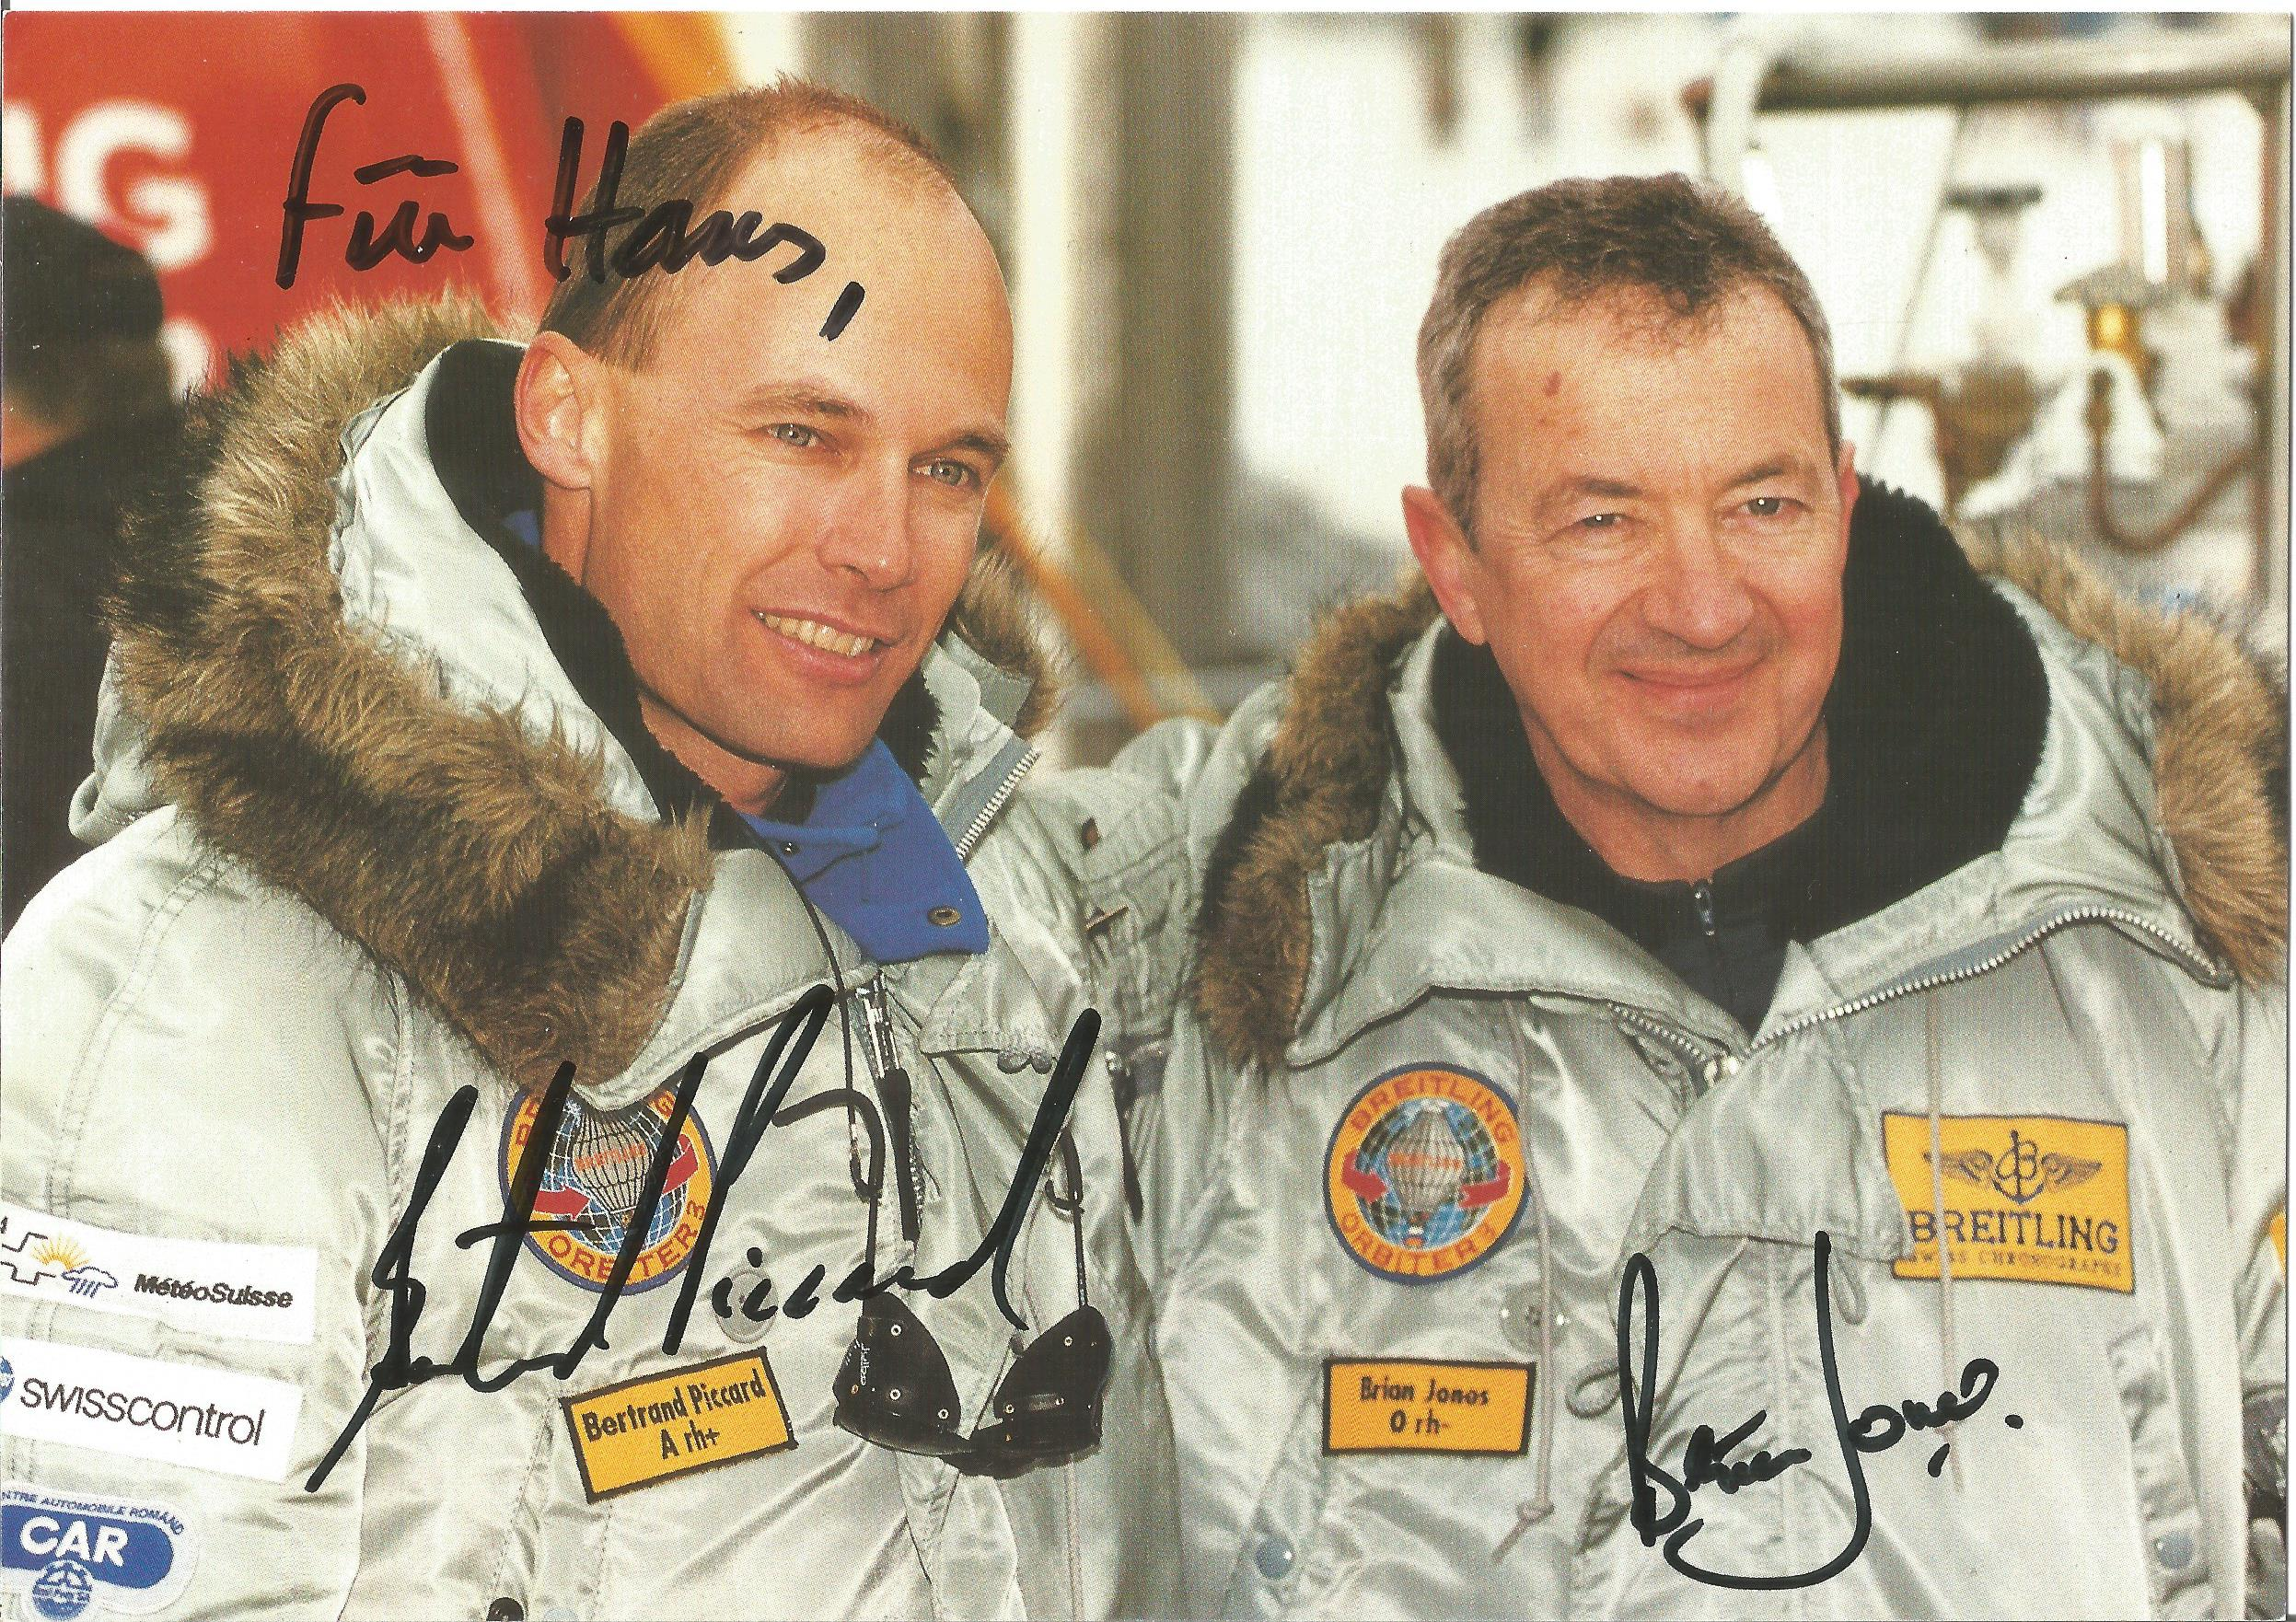 Bertrand Piccard and Brian Jones 8x6 colour postcard. Photo shows Piccard and Jones together, both